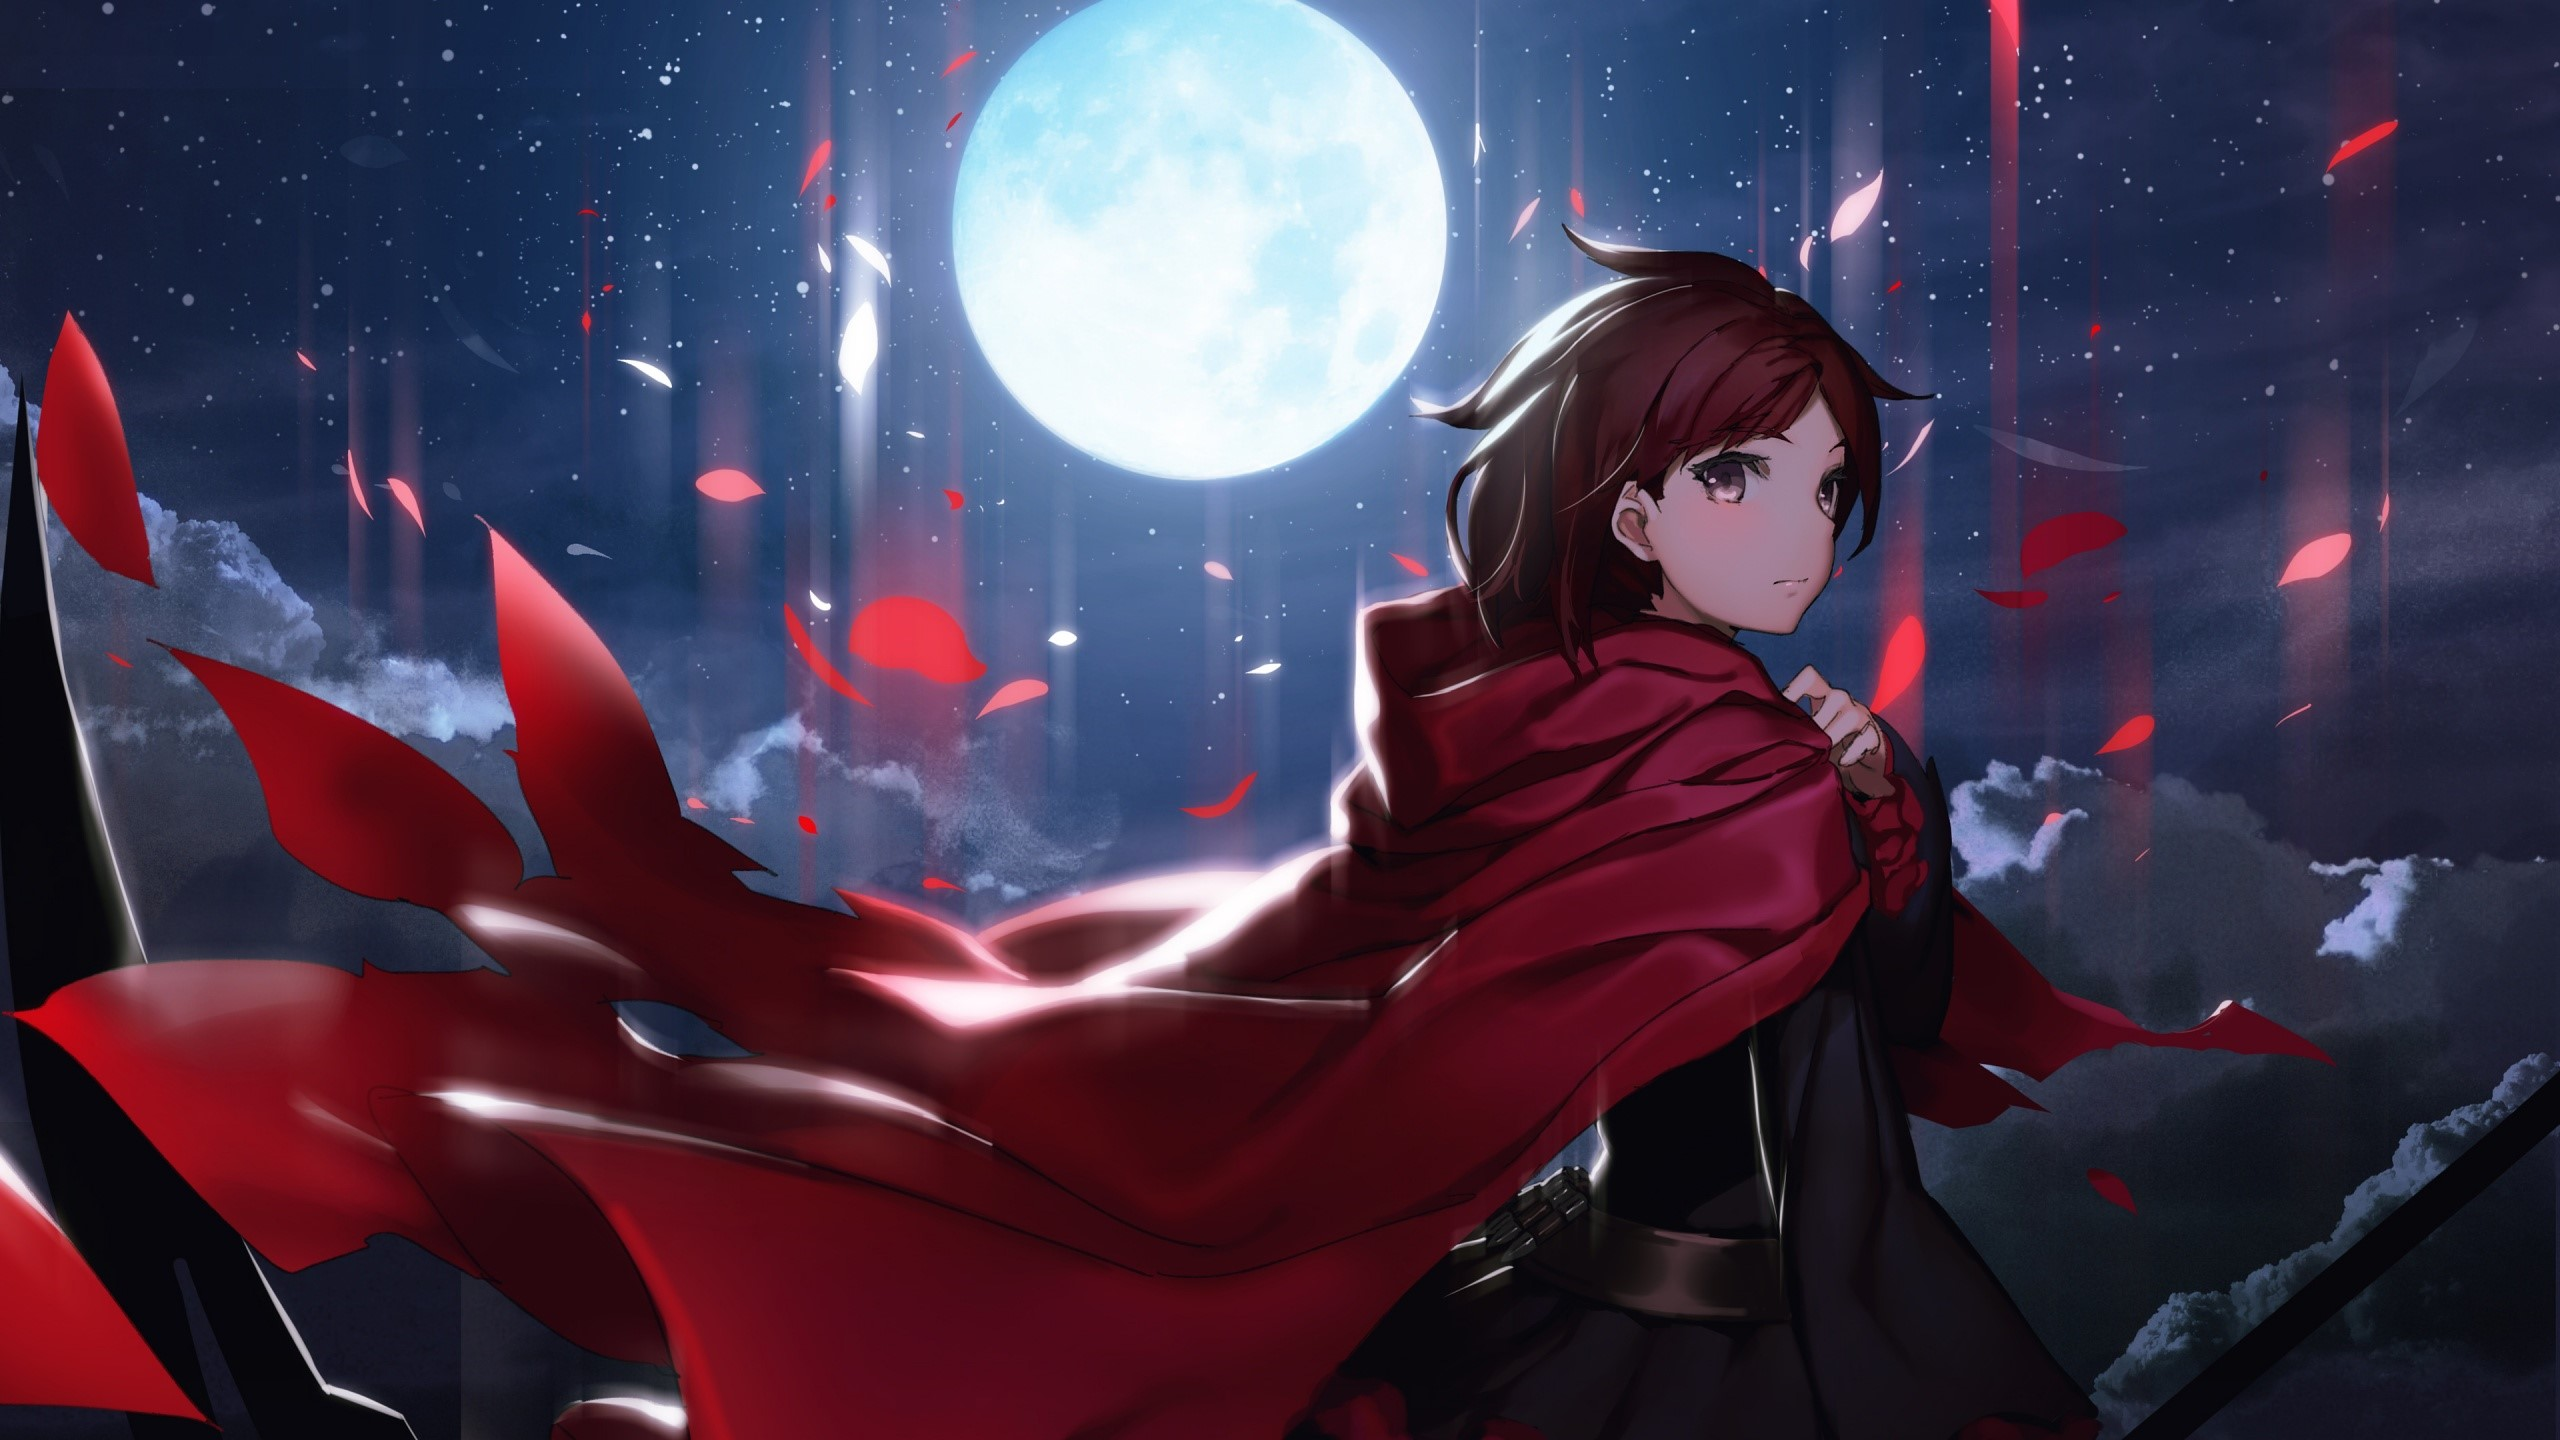 Anime Wallpaper Ruby rose by RWBY